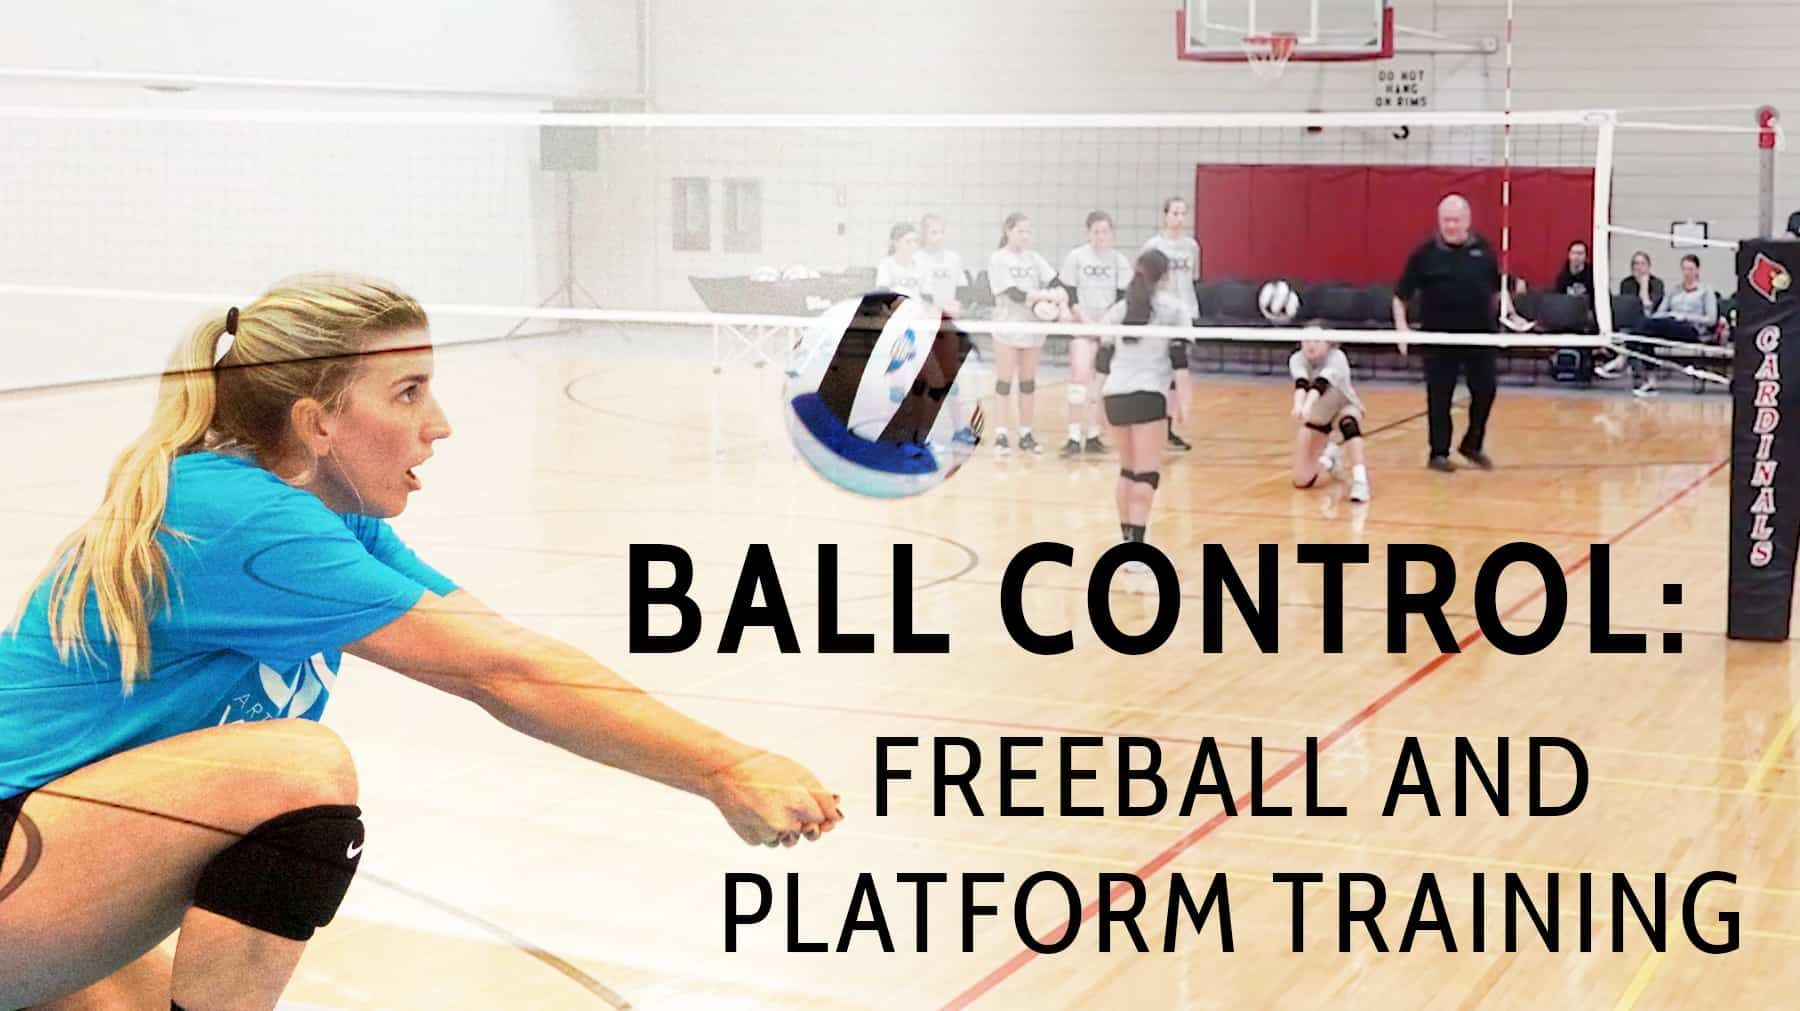 Ball Control Free Ball And Platform Training Coaching Volleyball Volleyball Skills Volleyball Drills